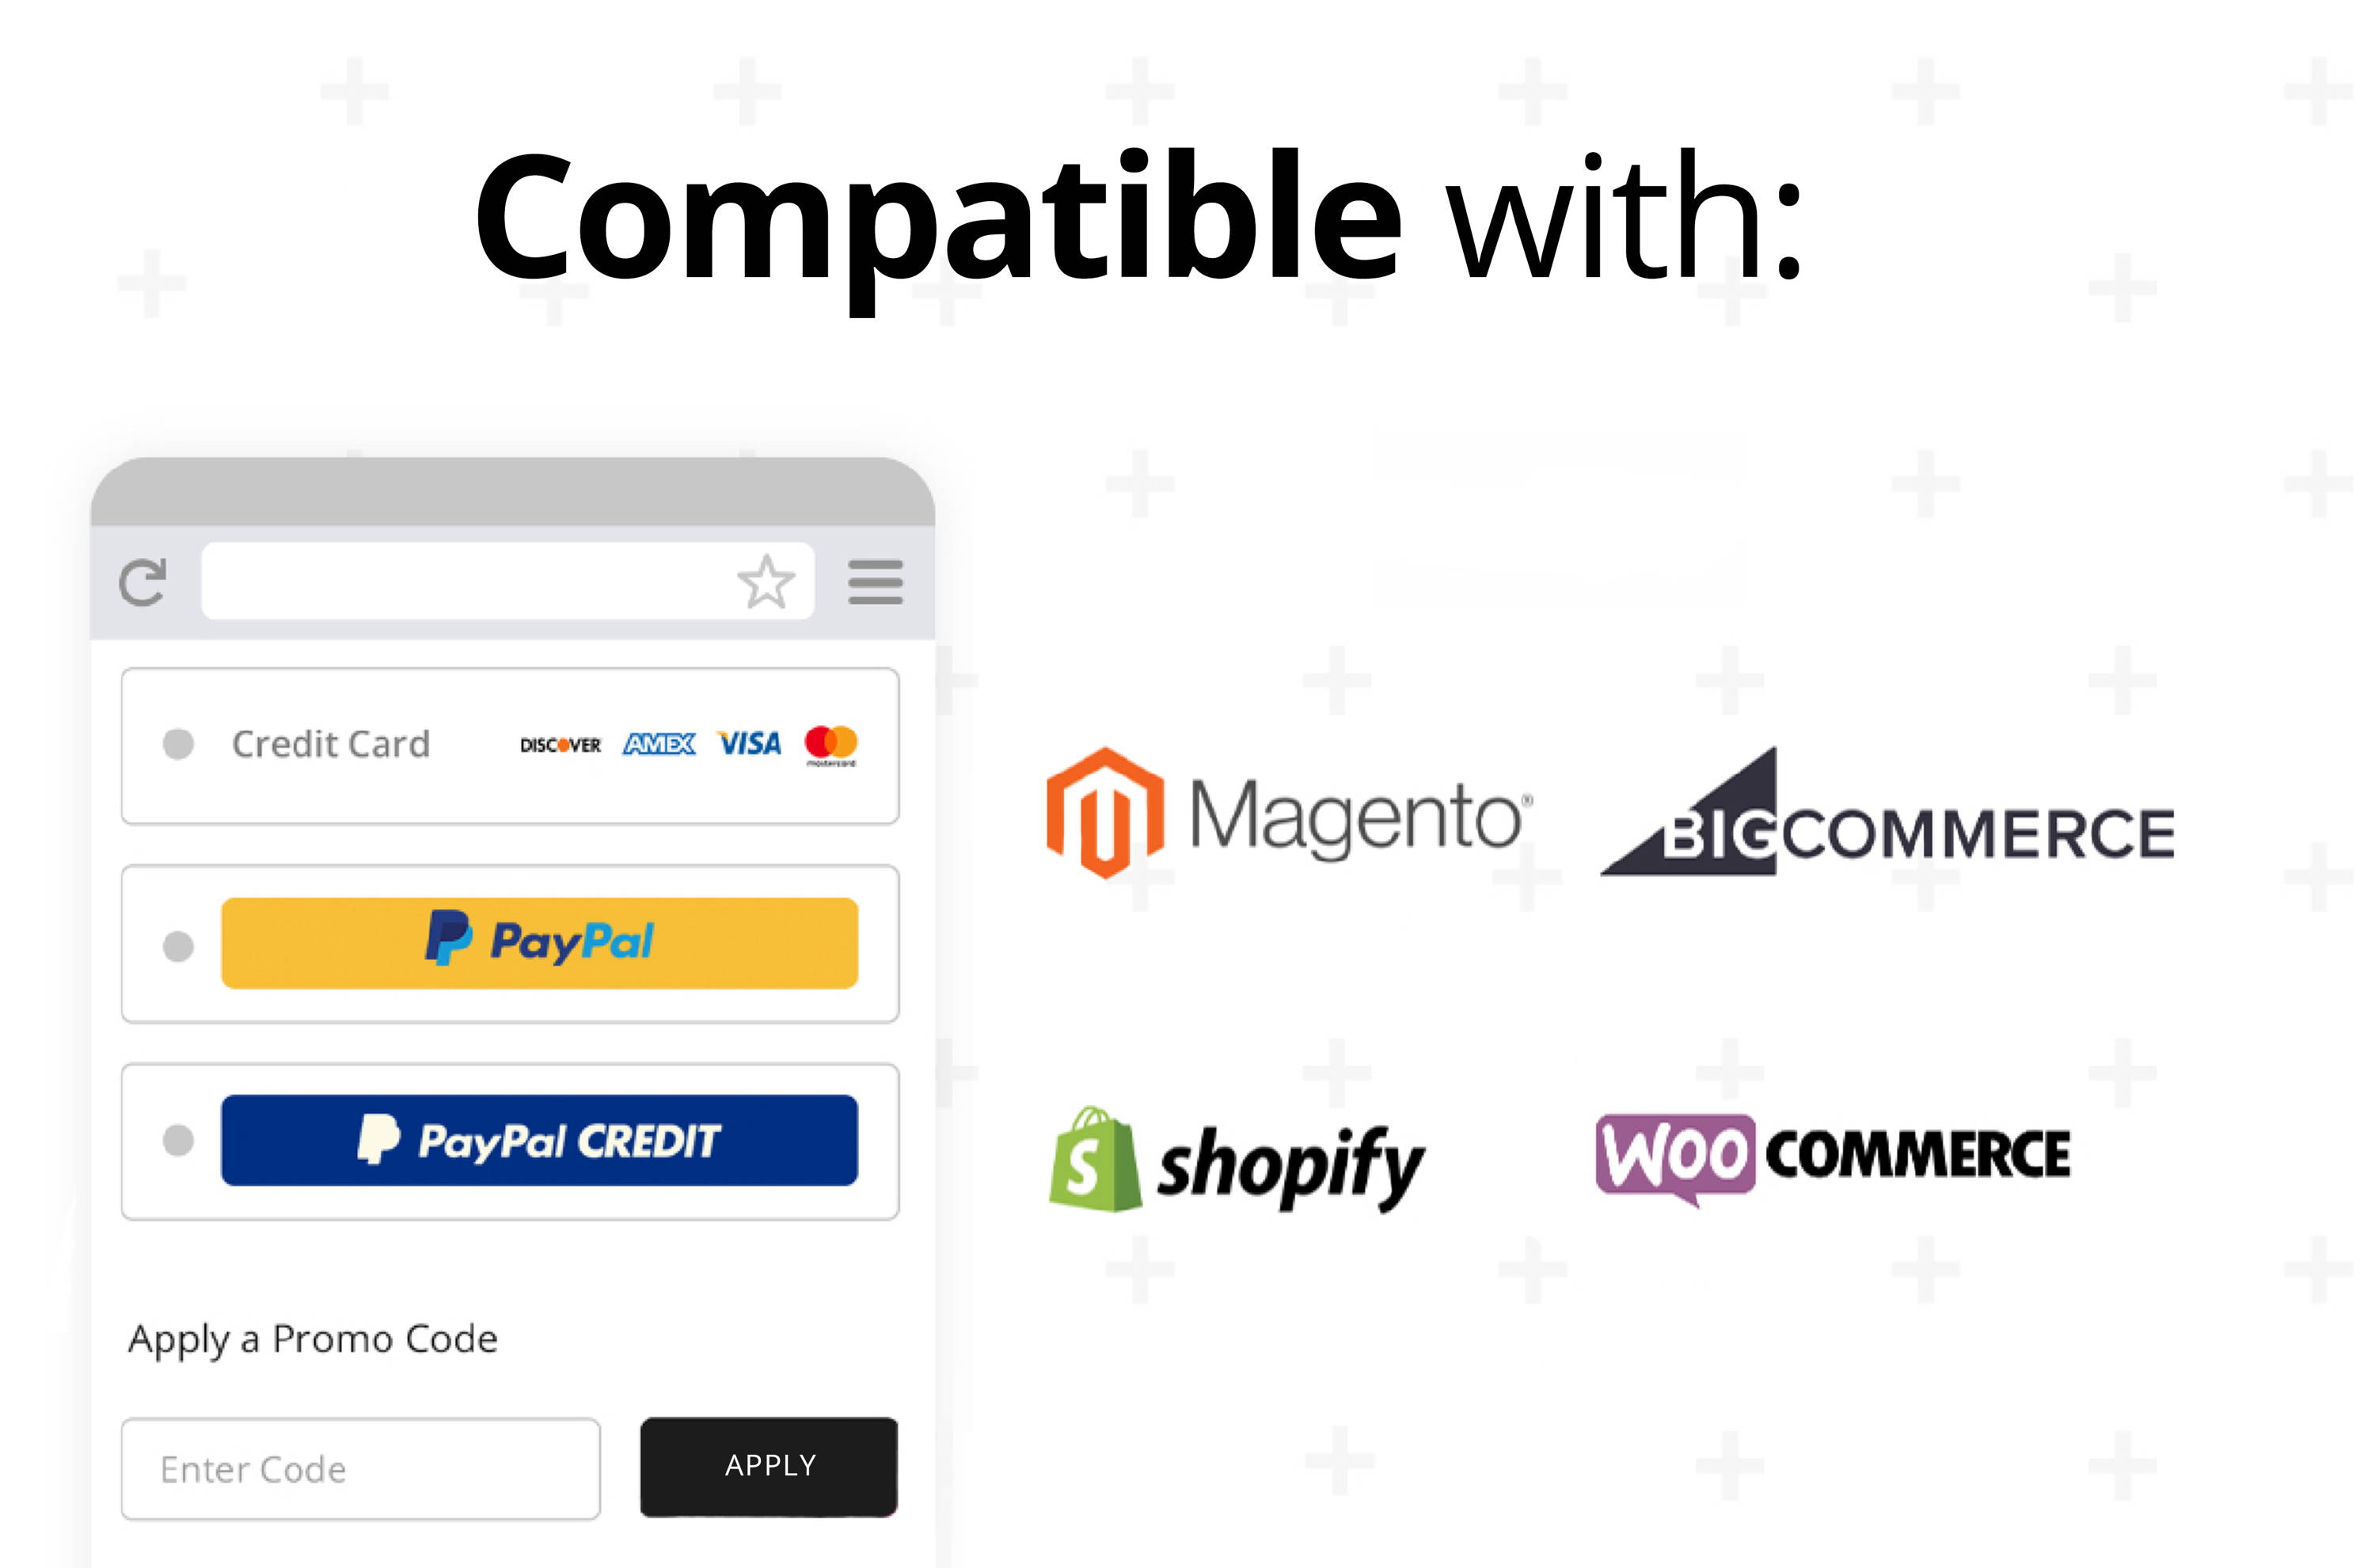 Bigcommerce Optimized Checkout Extension